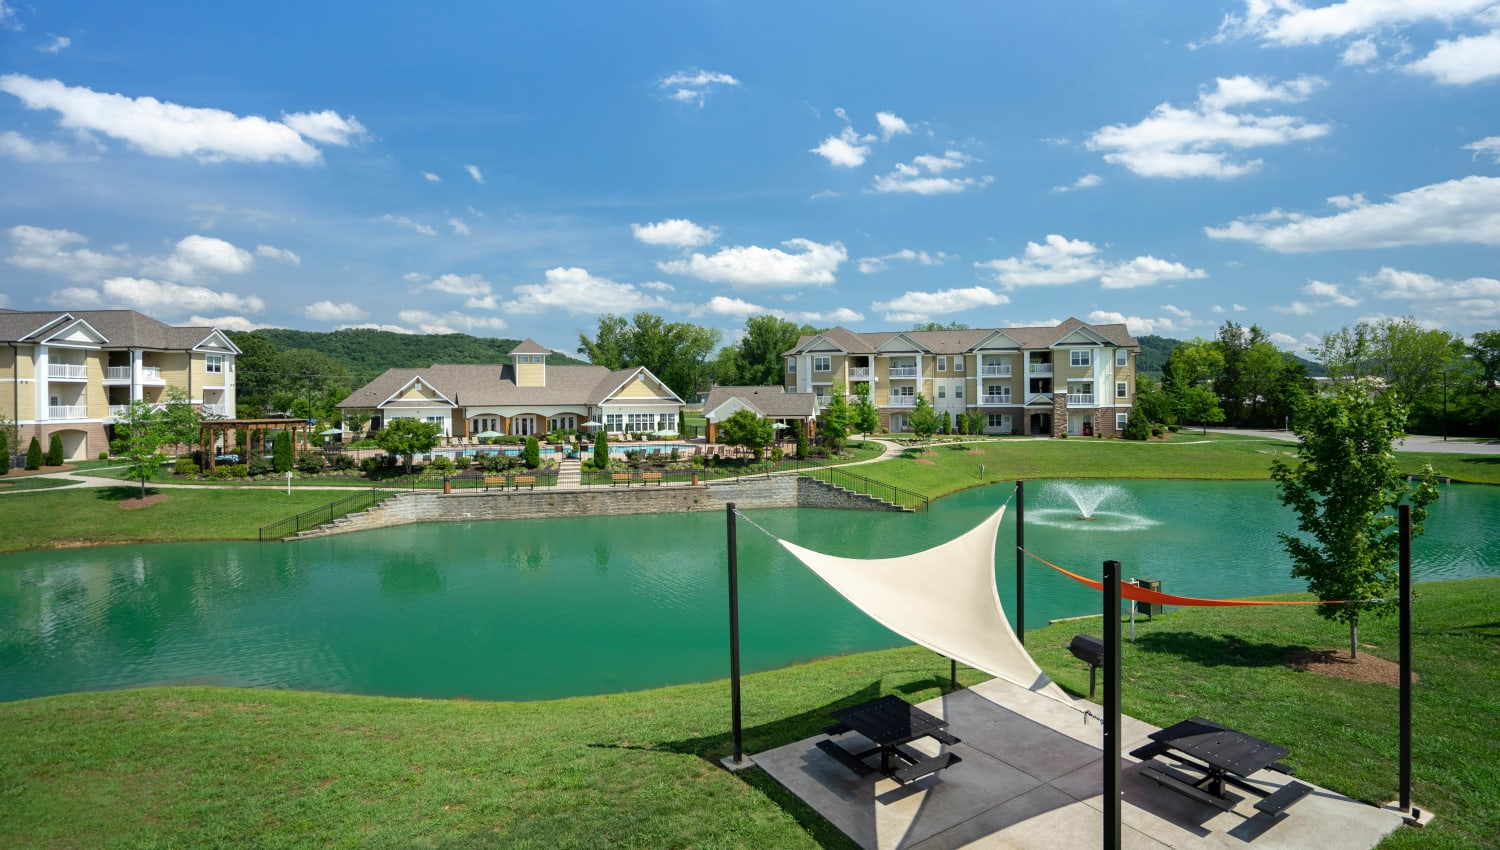 Picnic area near the lake at Legends at White Oak in Ooltewah, Tennessee